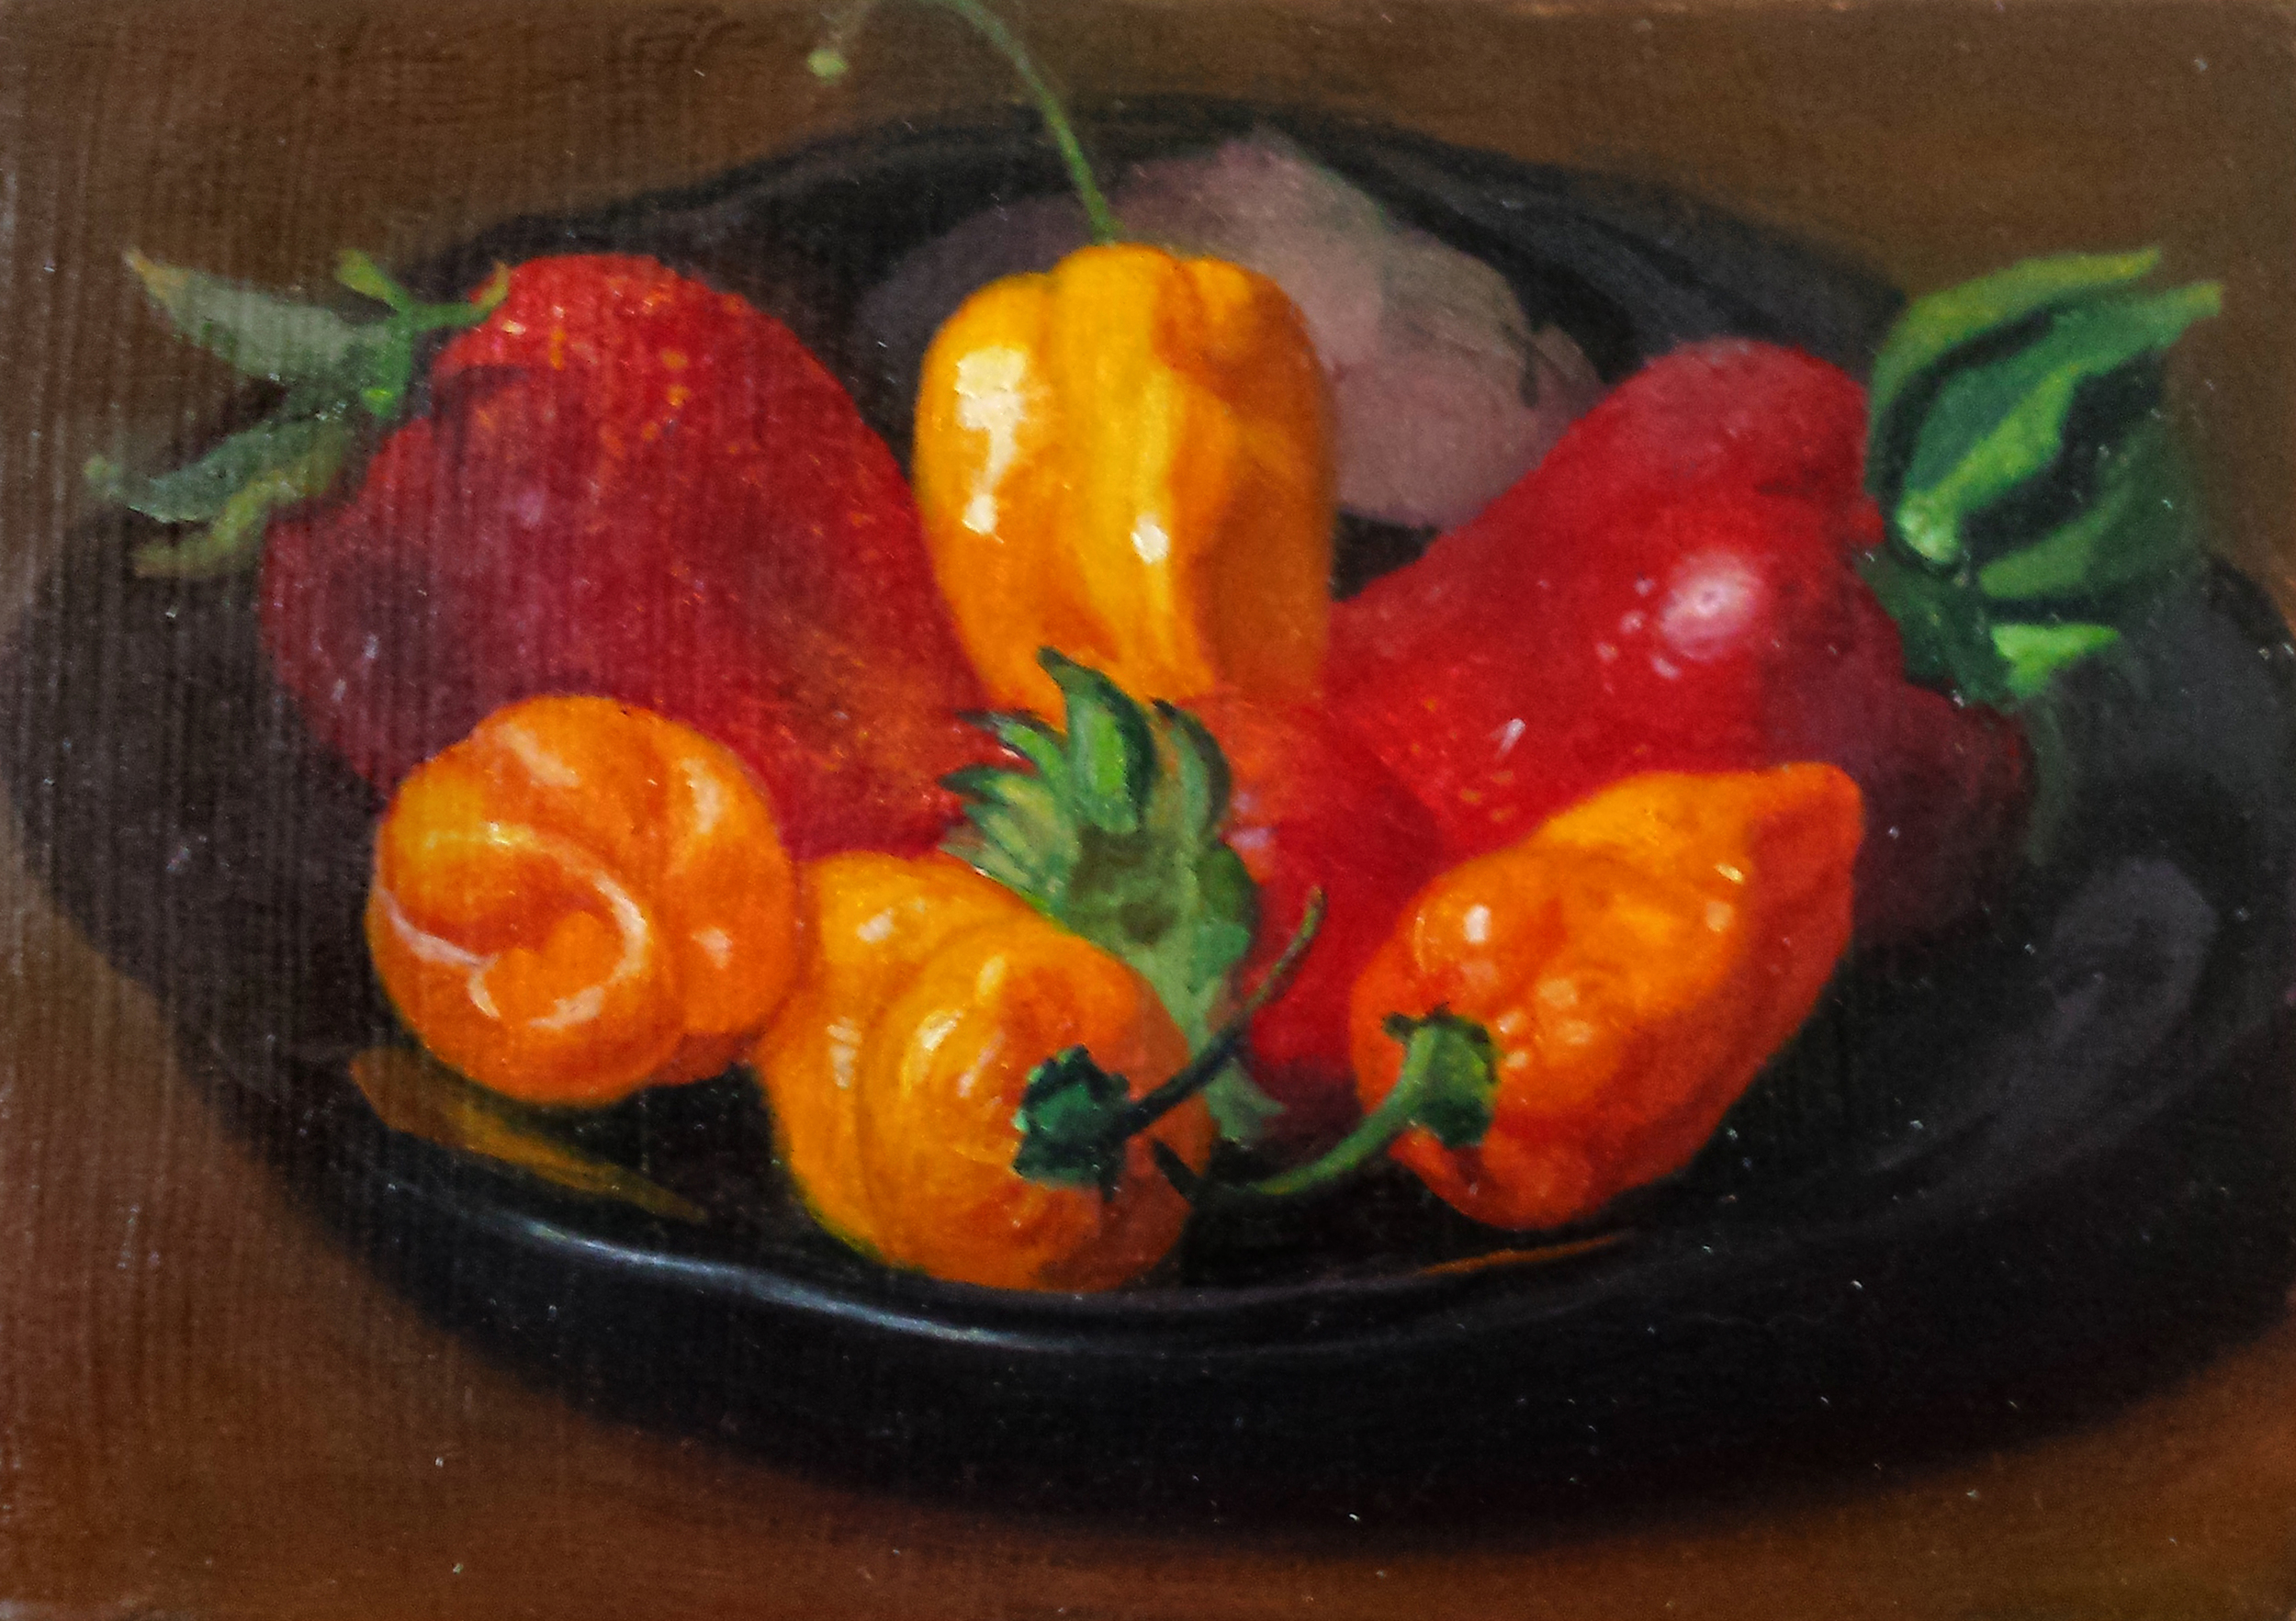 Strawberries and peppers